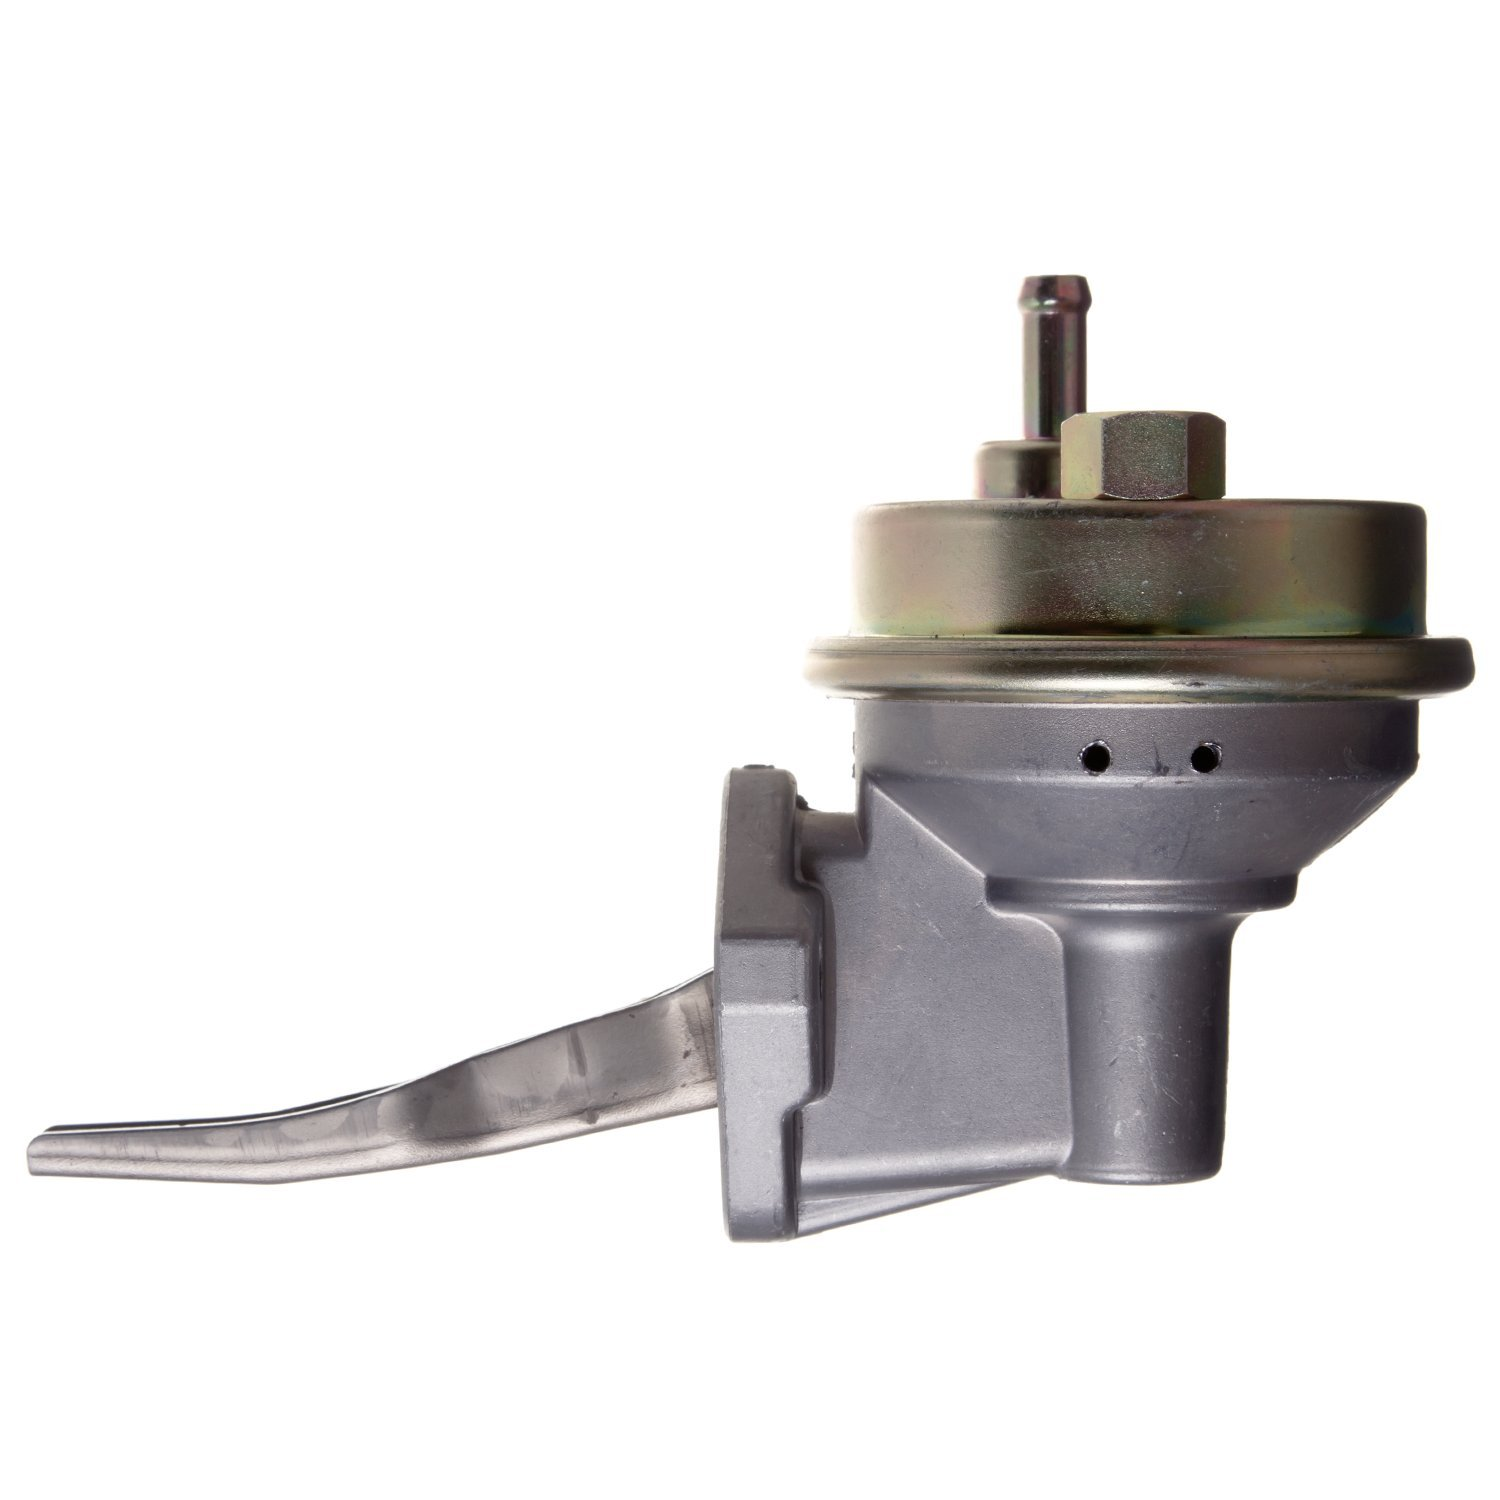 Delphi MF0025 Mechanical Fuel Pump